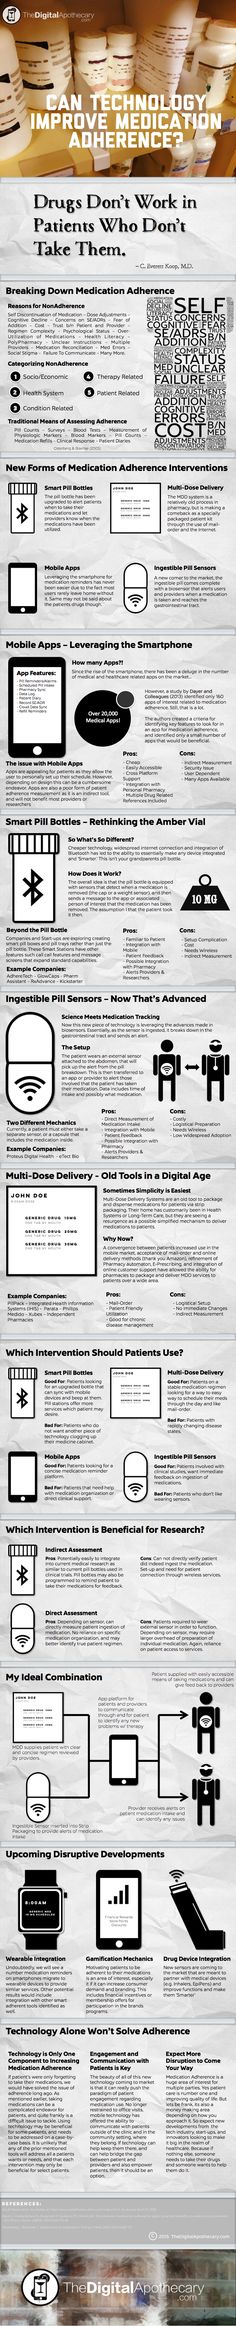 Medication adherence and digital health infographic by Timothy Aungst